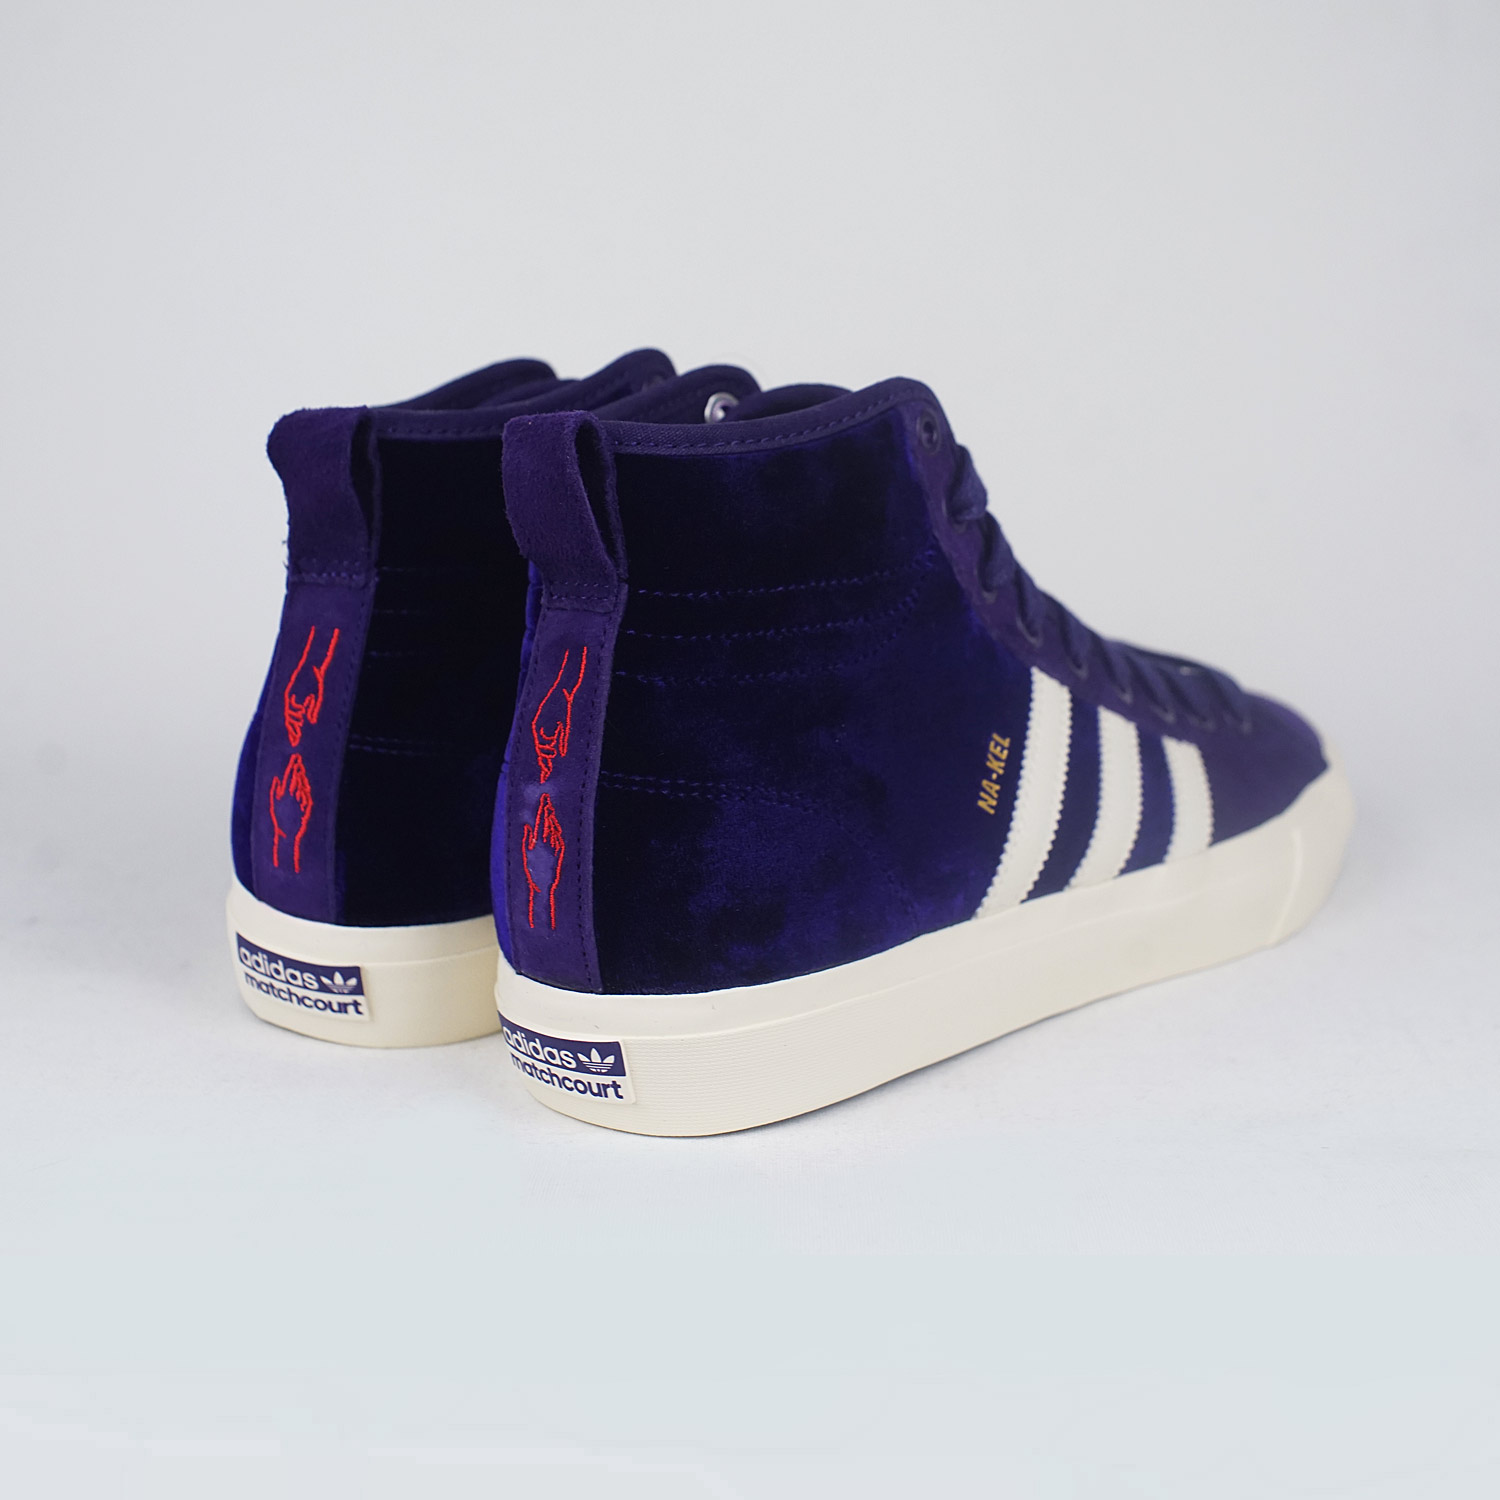 What To Match Purple Adidas Shoes With